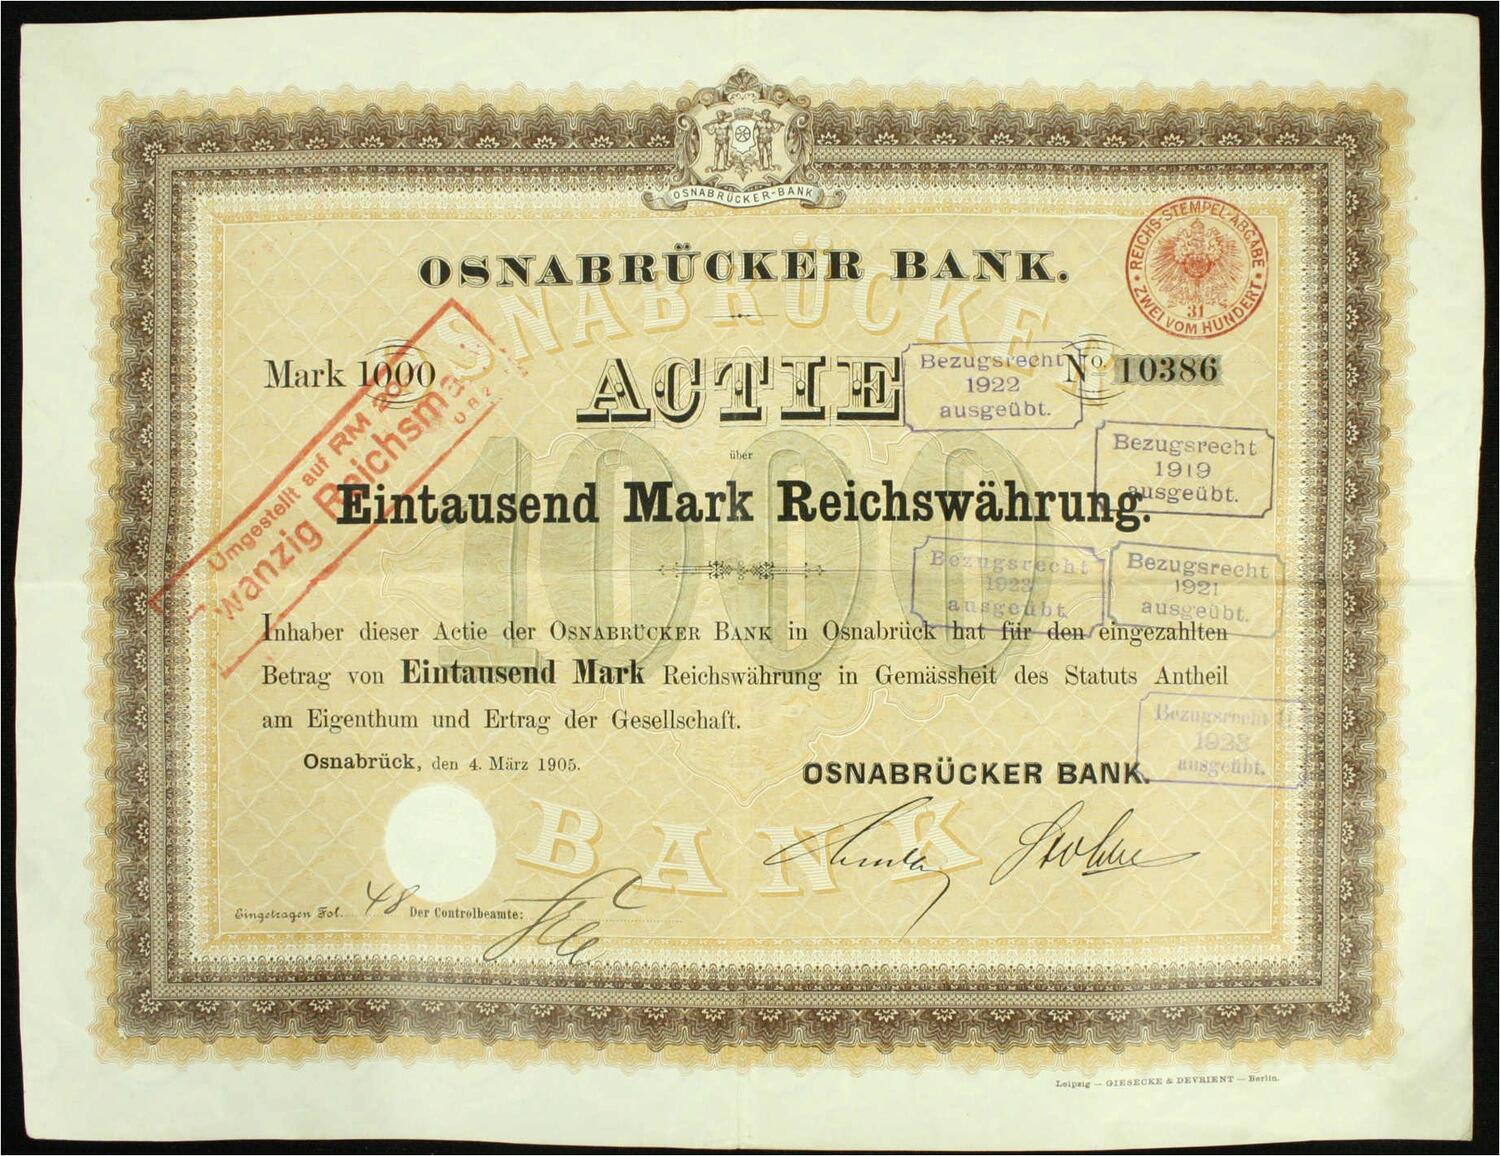 https://www.numisbids.com/sales/hosted/teutoburger/130/image03374.jpg